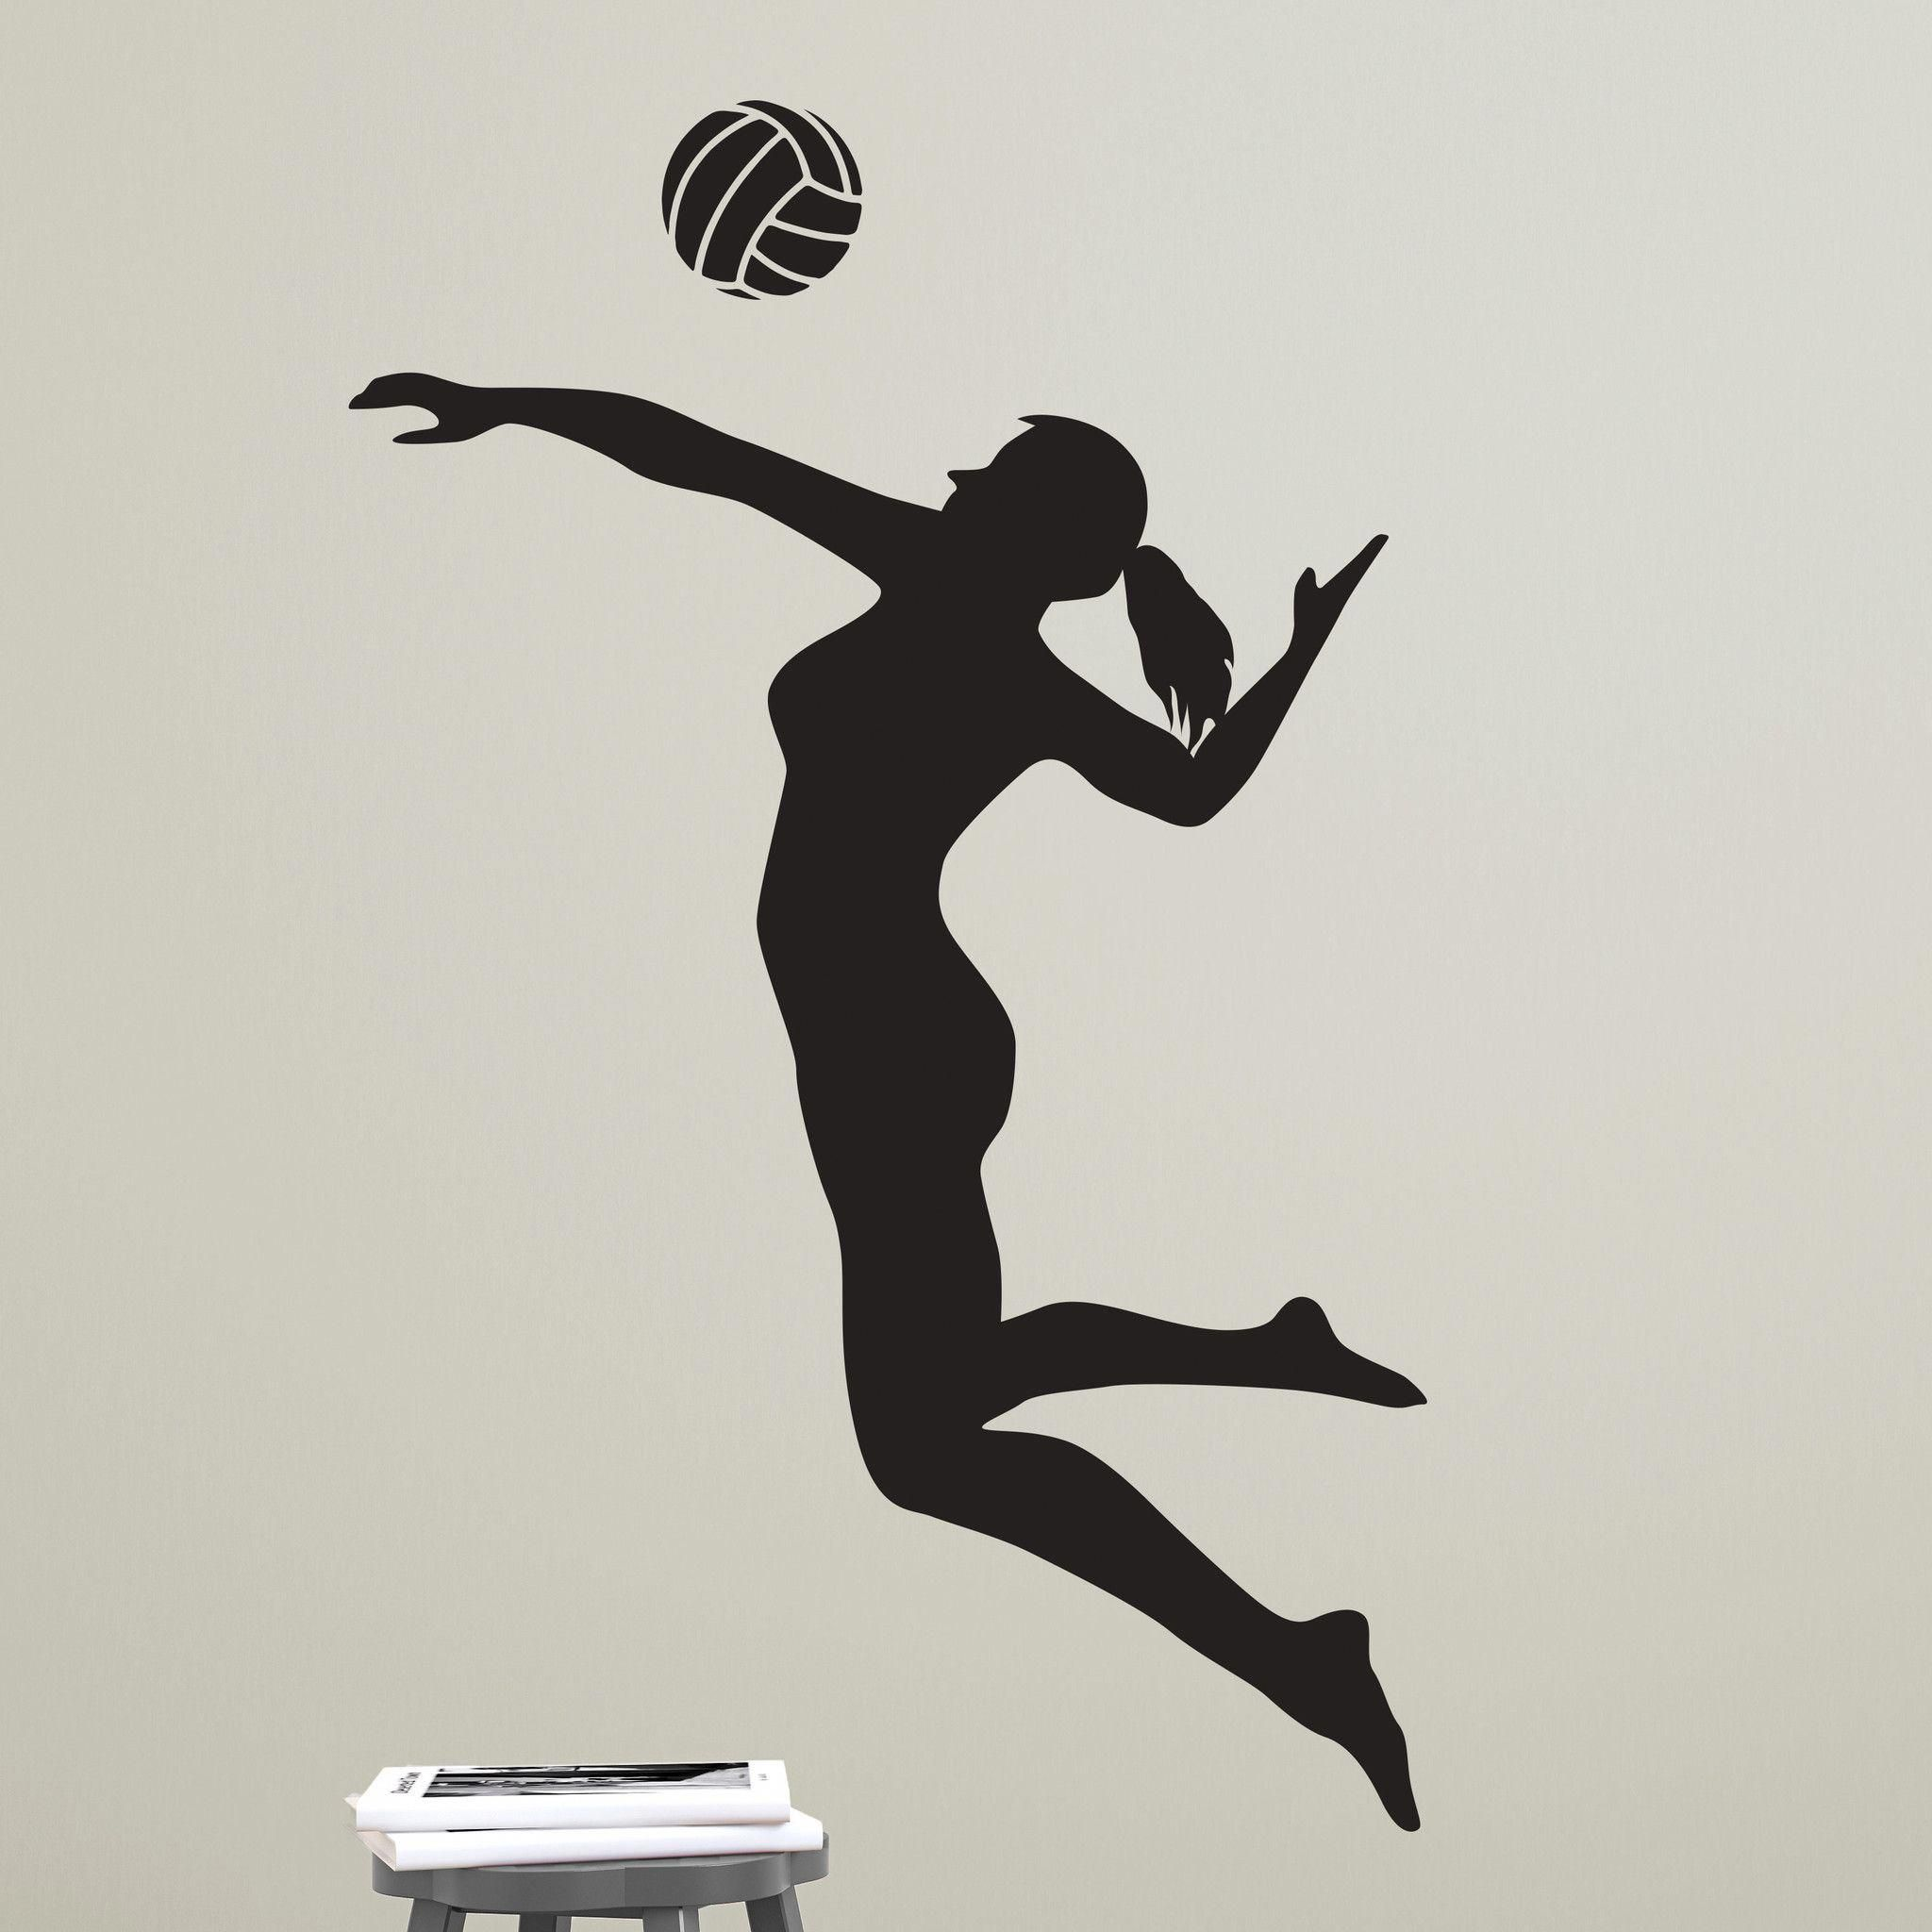 World Unique Imports Volleyball Player Spiking Metal Wall Sculpture Products In 2019 Metal Wall Sculpture Panel Wall Art Wall Sculptures